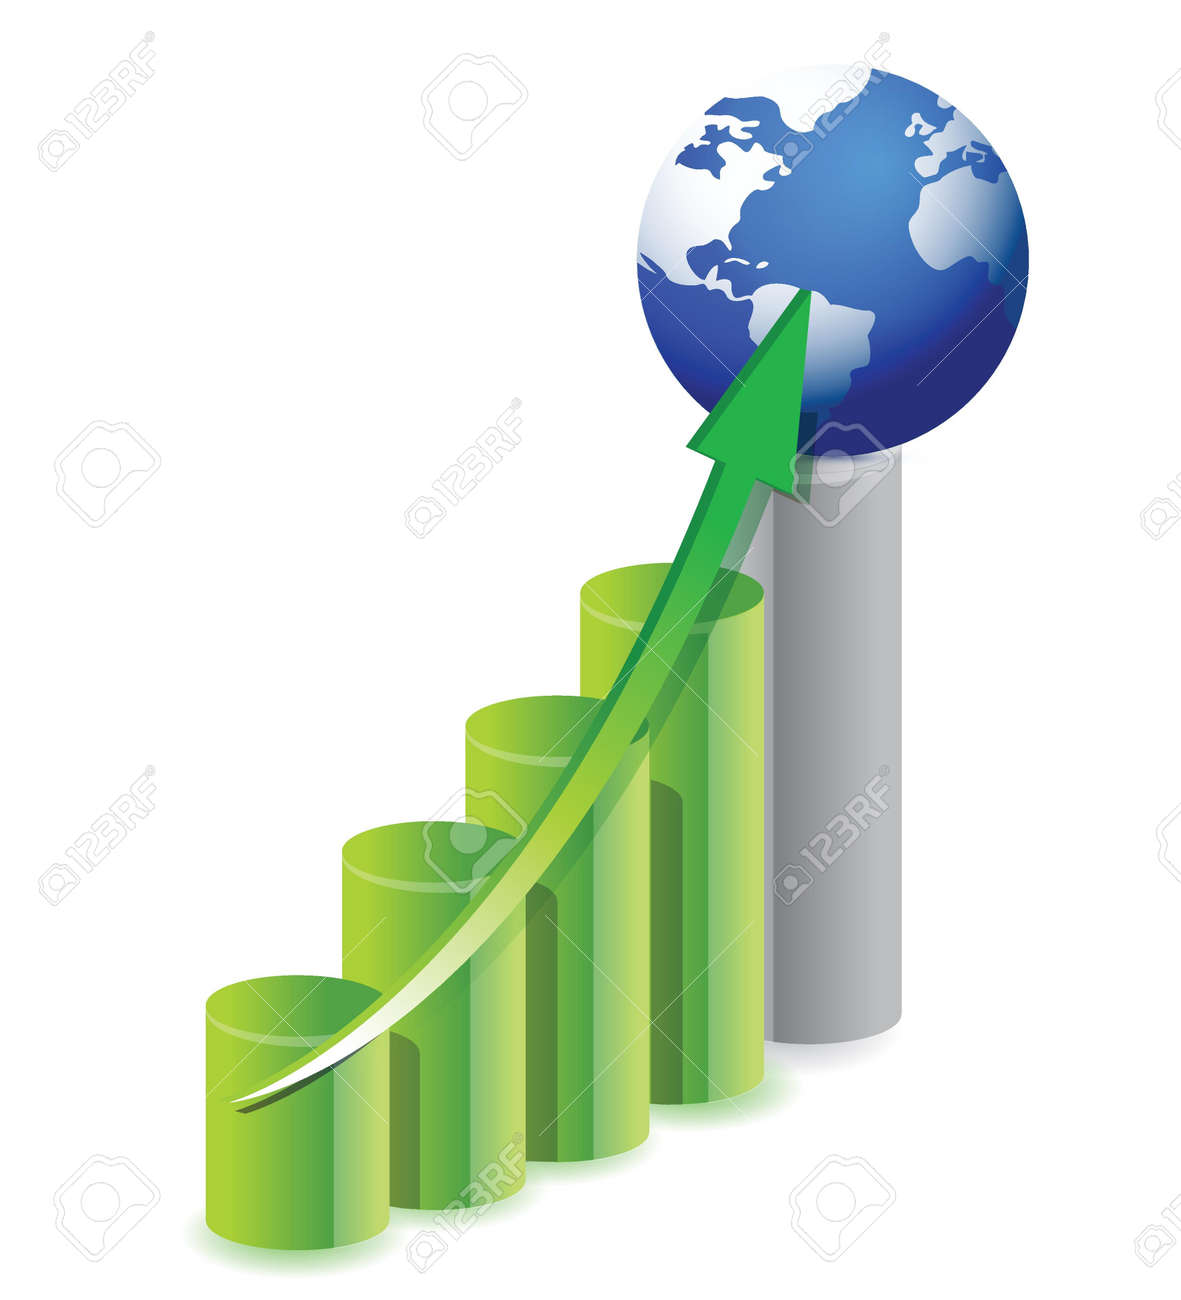 business graph with a globe in top illustration design Stock Vector - 16082576